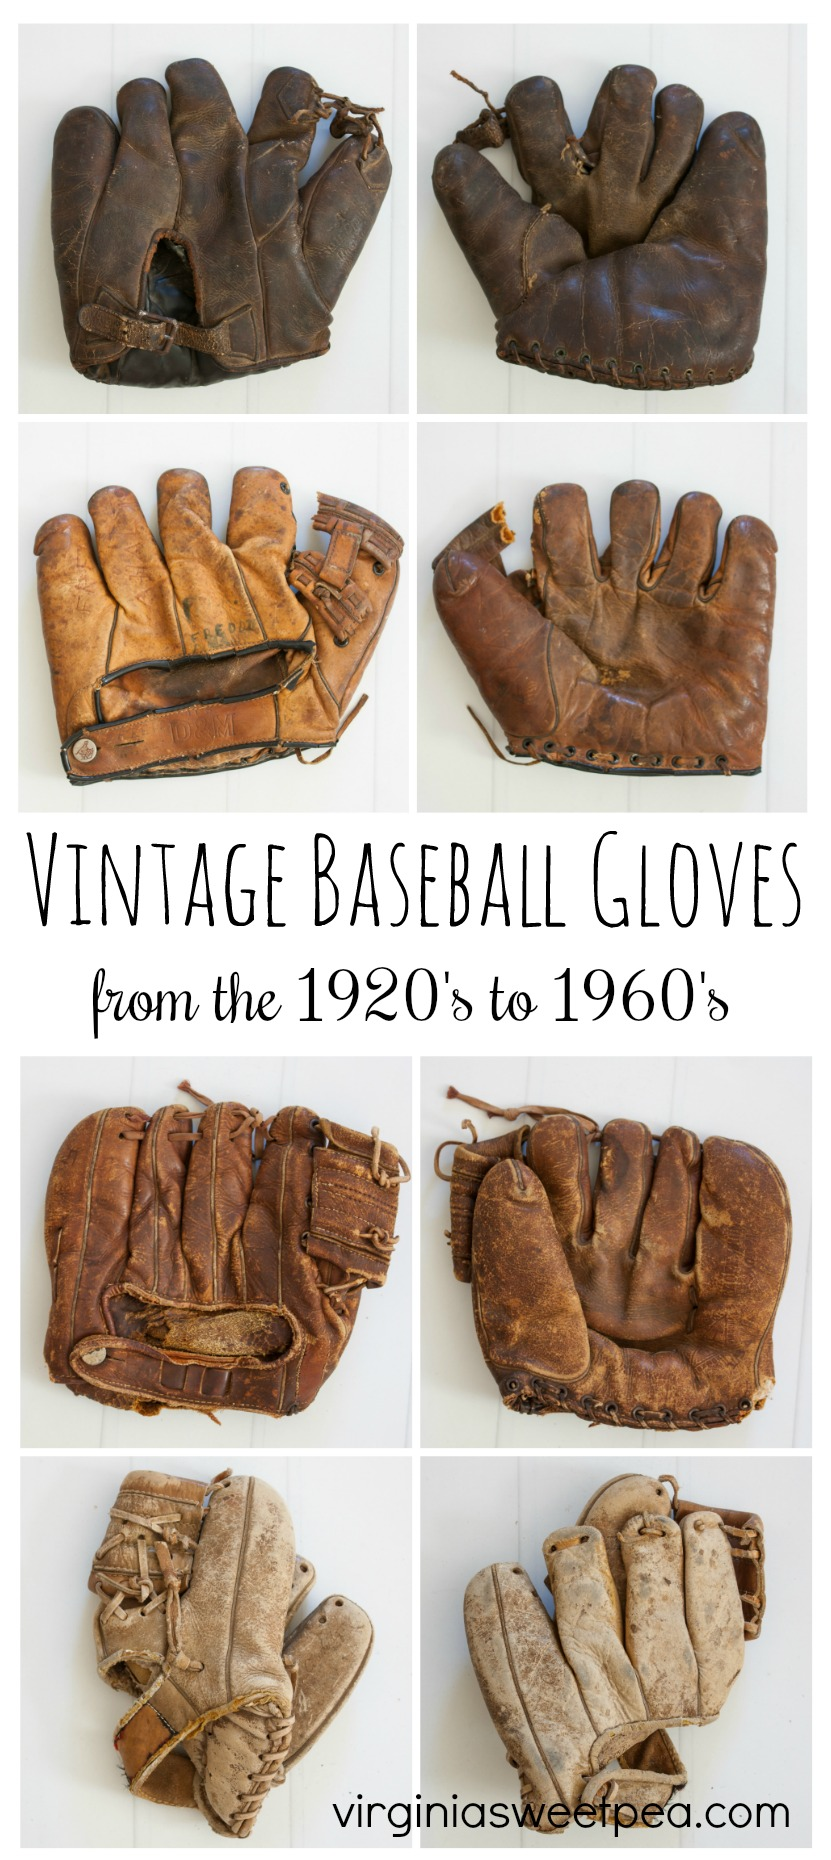 Vintage Baseball Gloves from the 1920's - 1960's